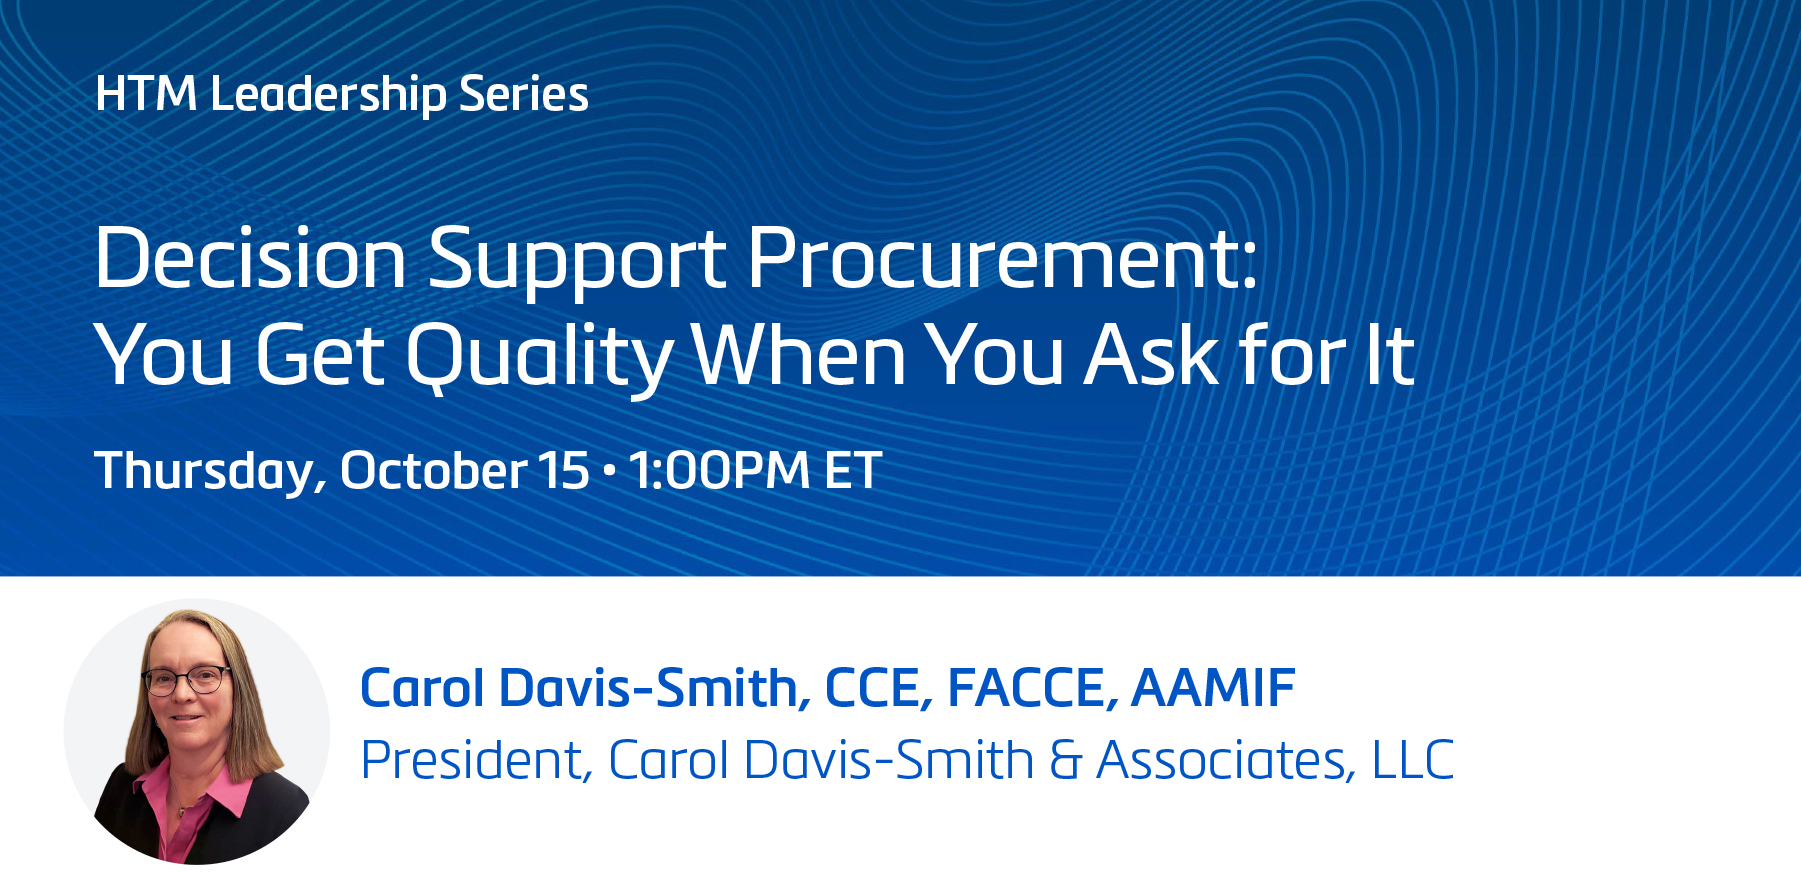 Decision Support Procurement: You Get Quality When You Ask for It